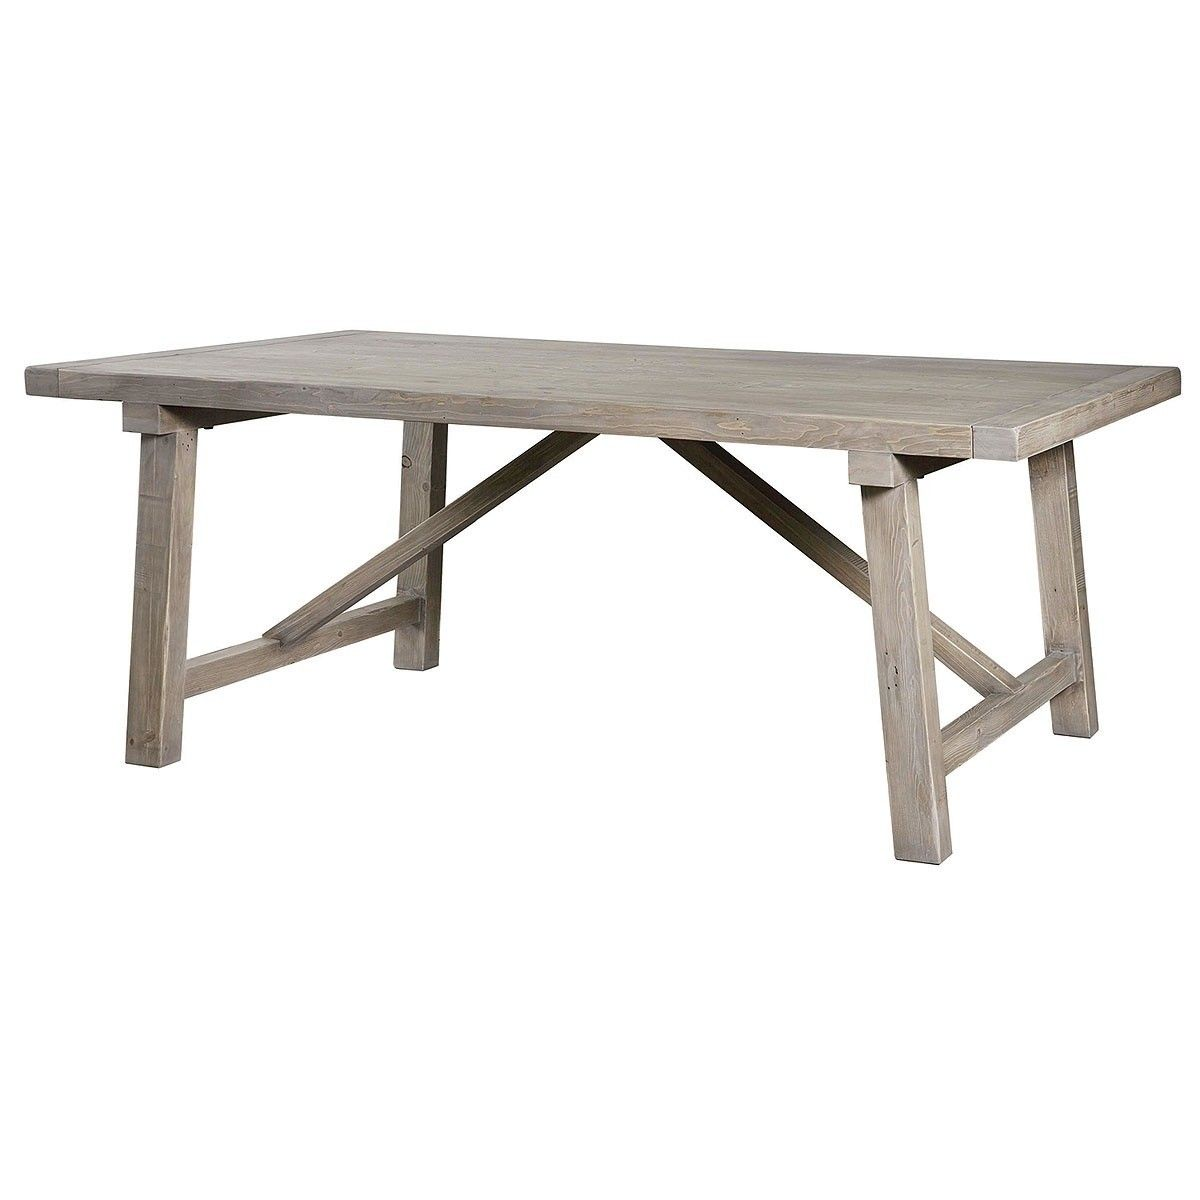 wood table grey - Google-søk